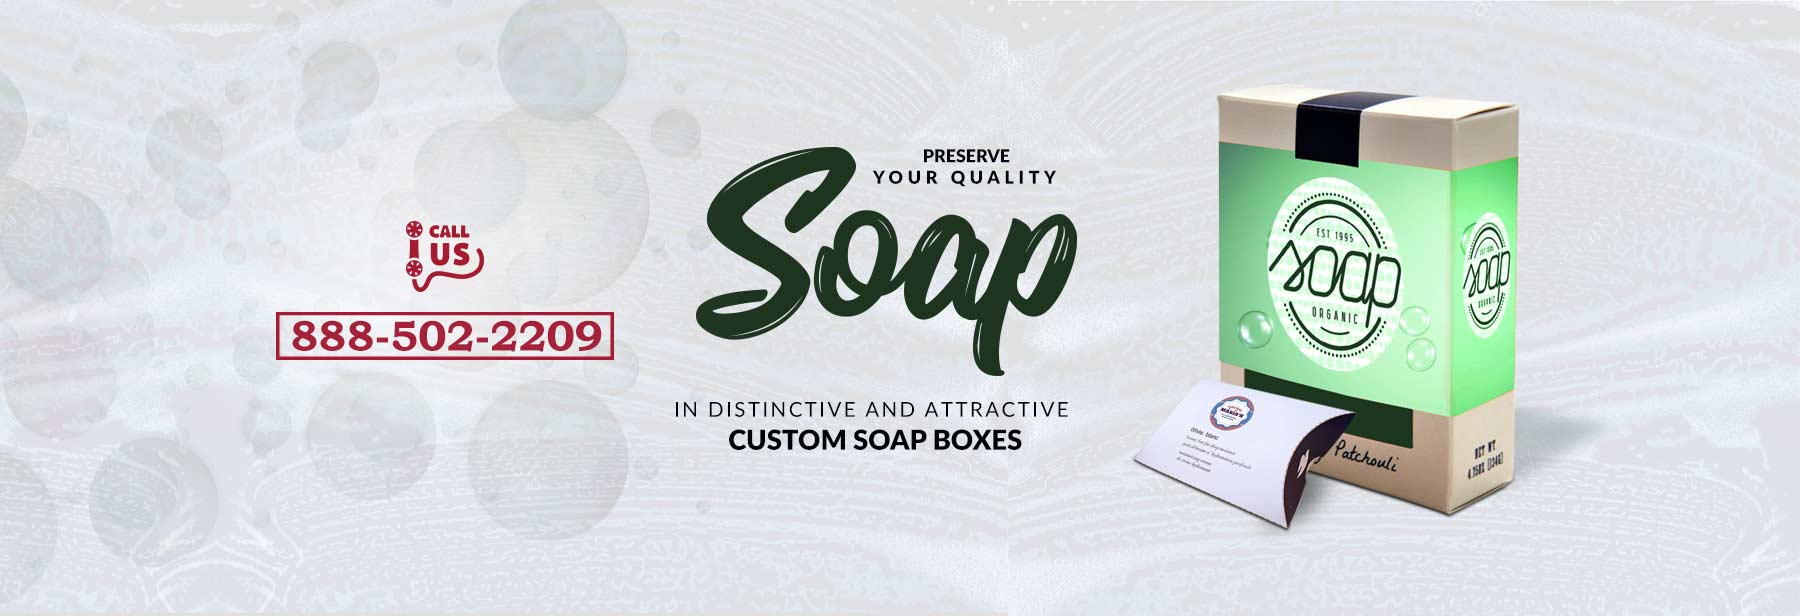 Custom Soap Boxes